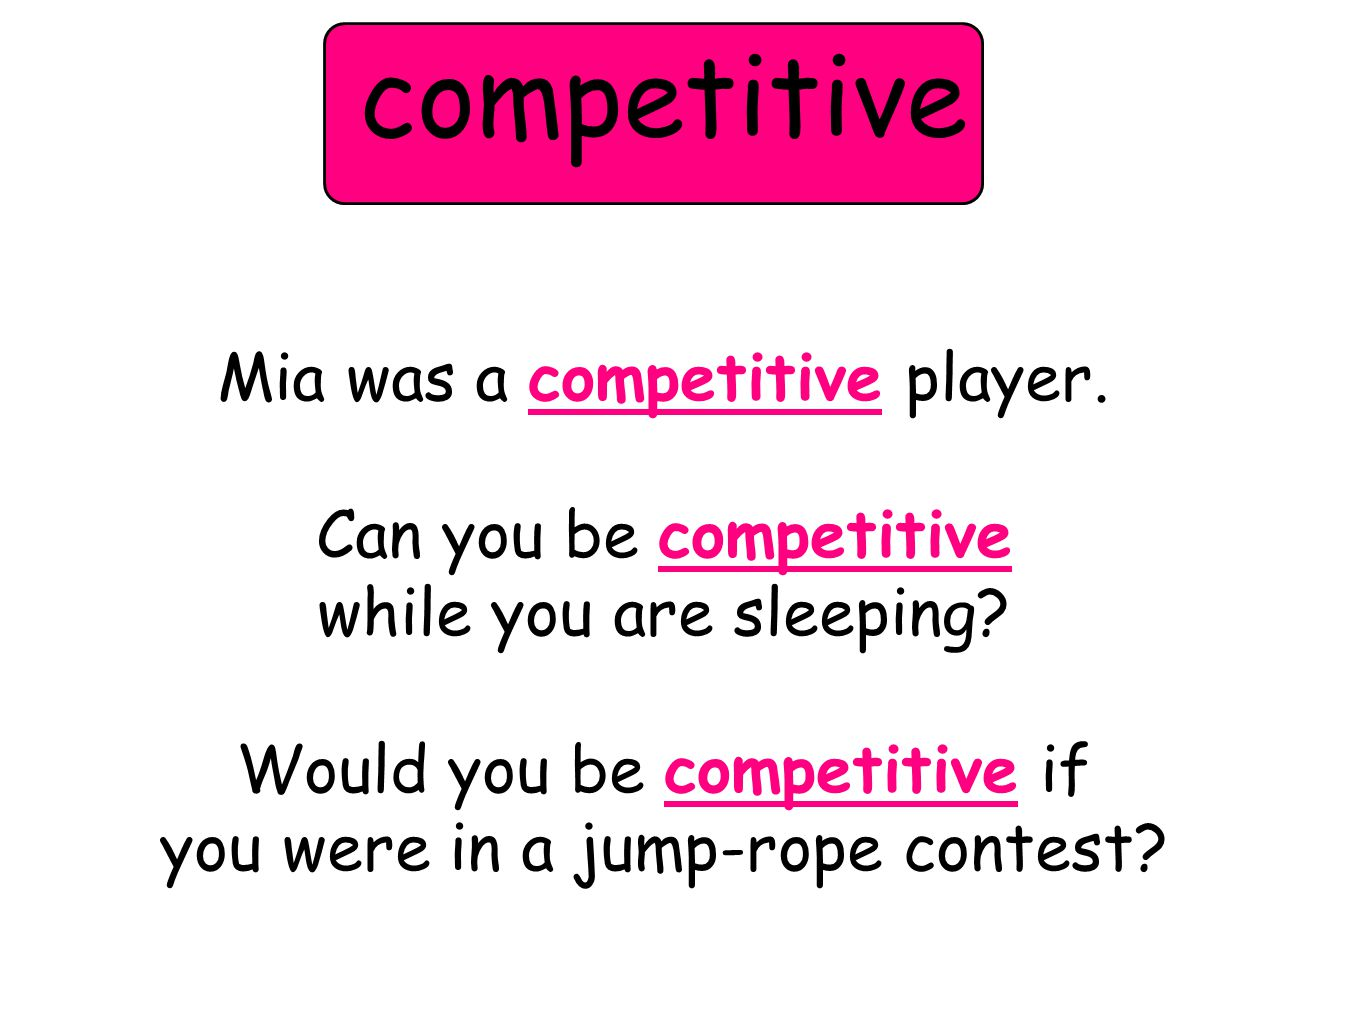 competitive Mia was a competitive player. Can you be competitive while you are sleeping.